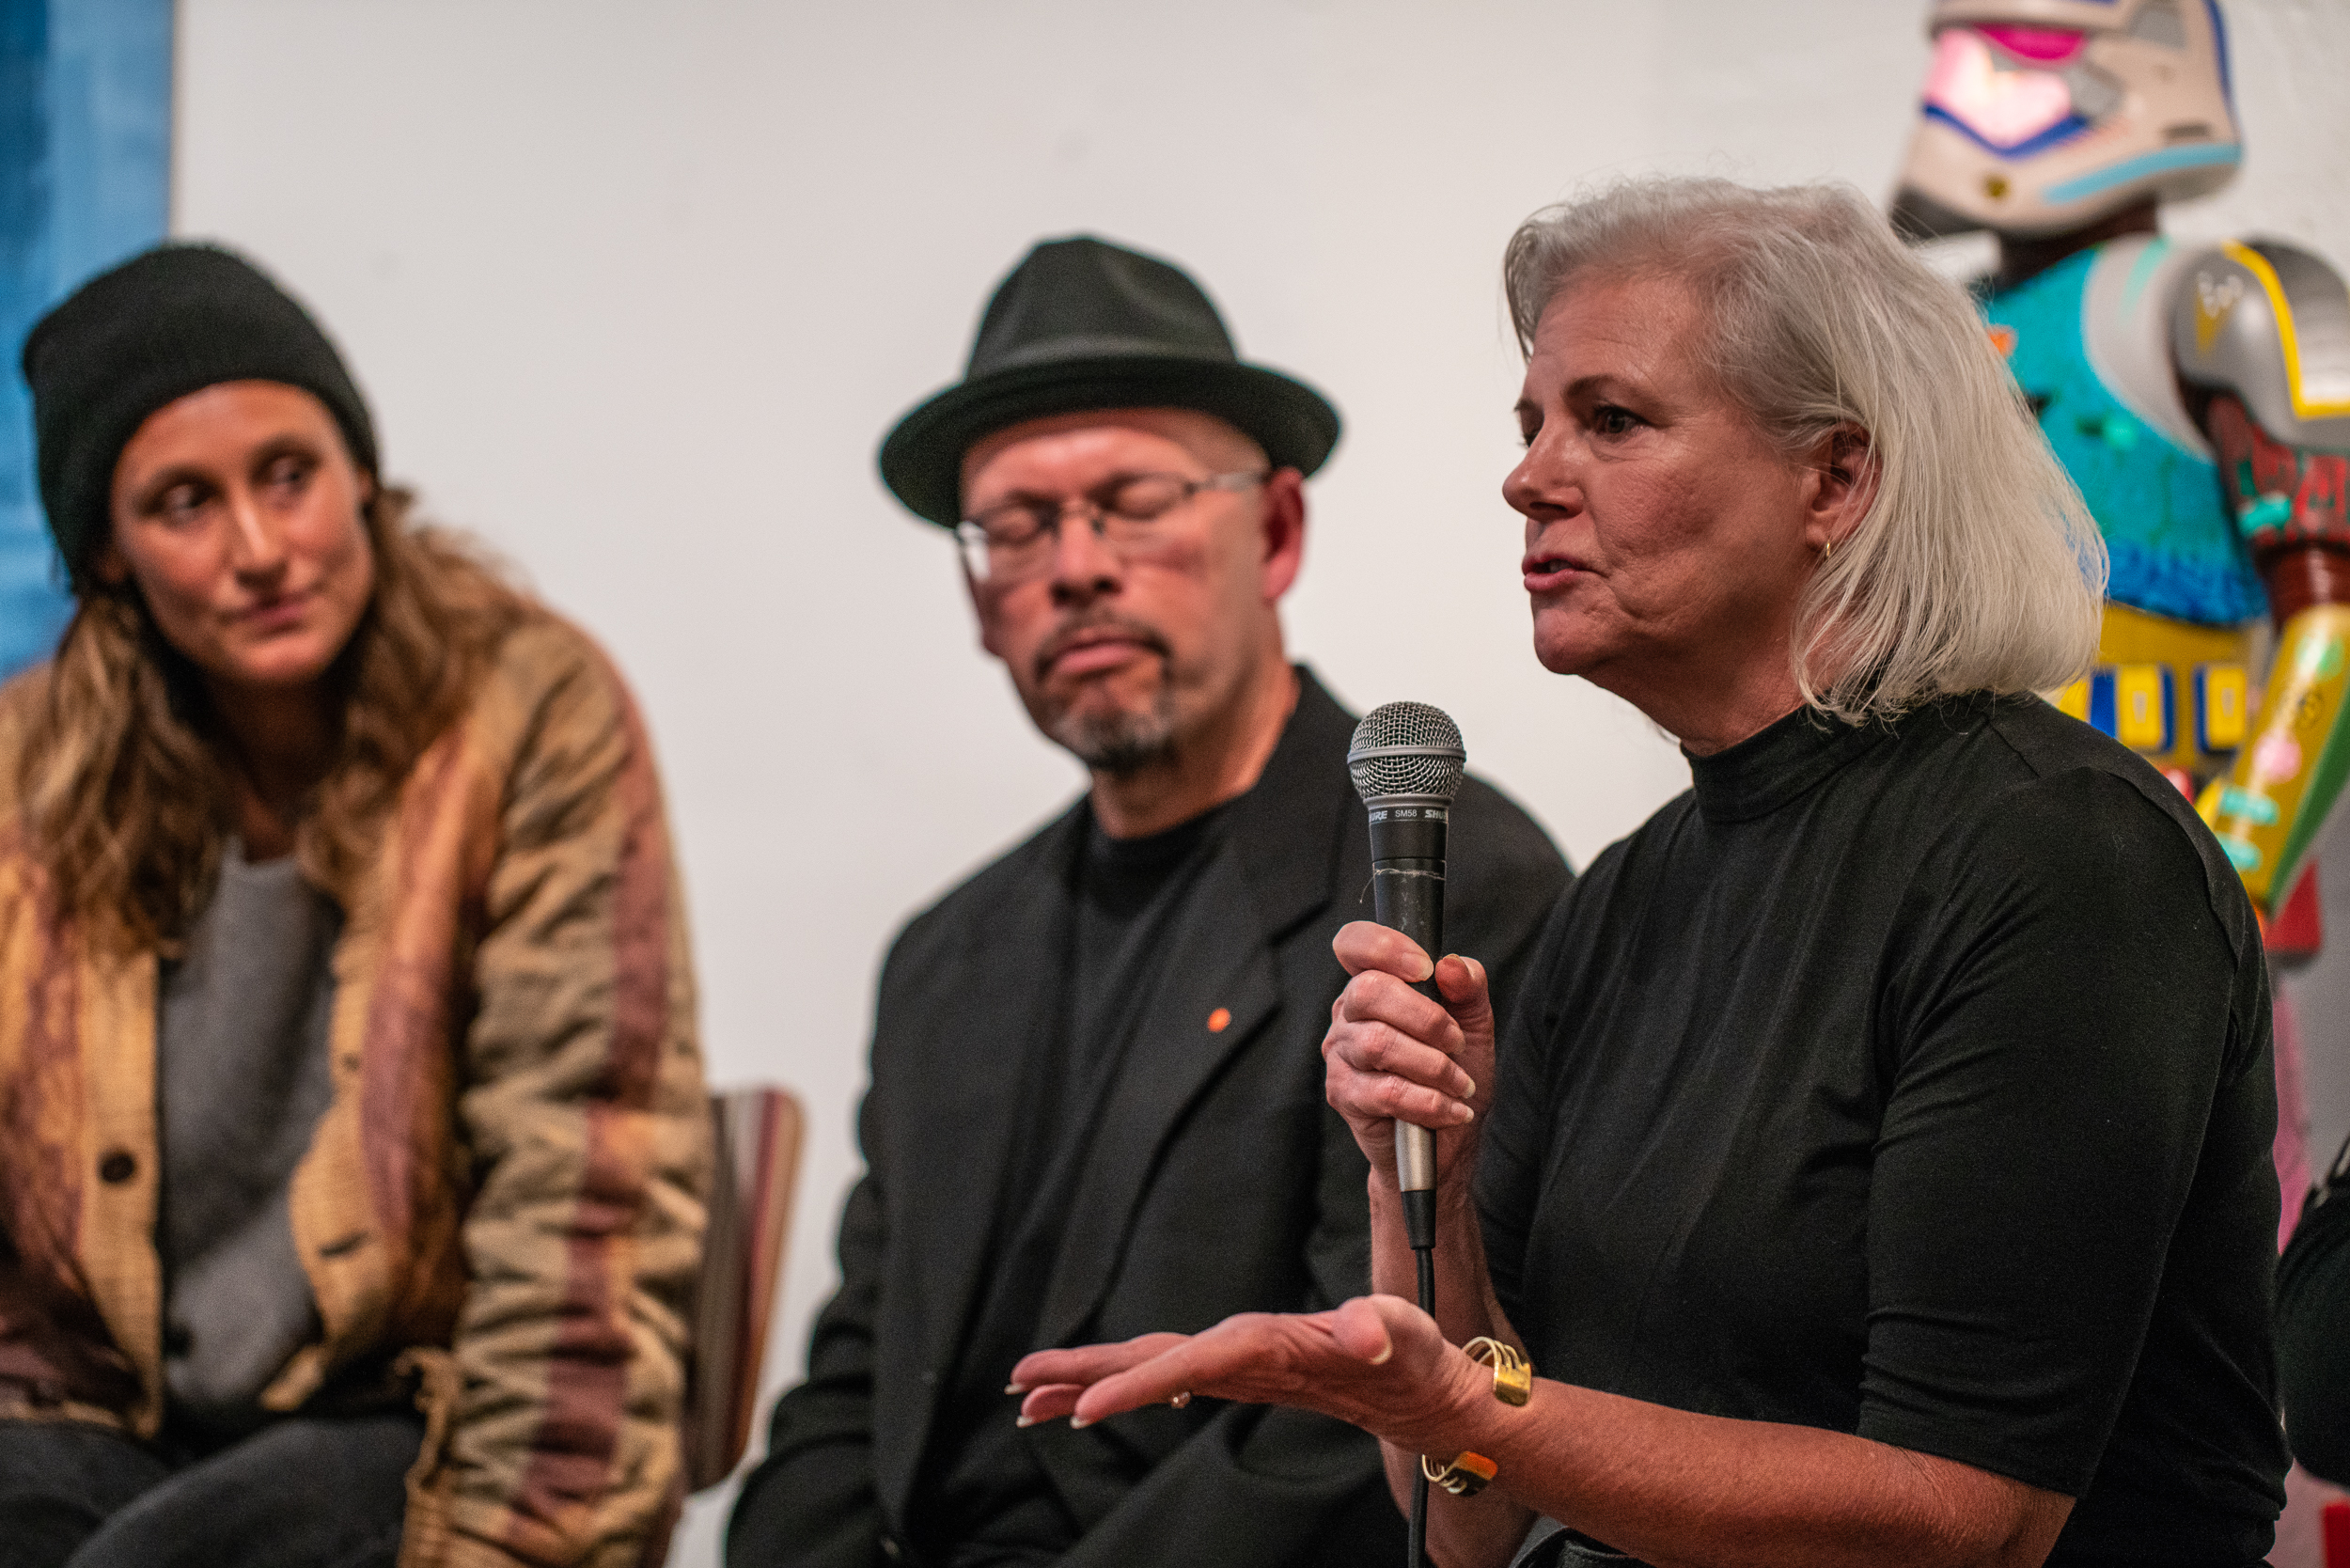 MaterialRevolution_KrisKish-26.jpg